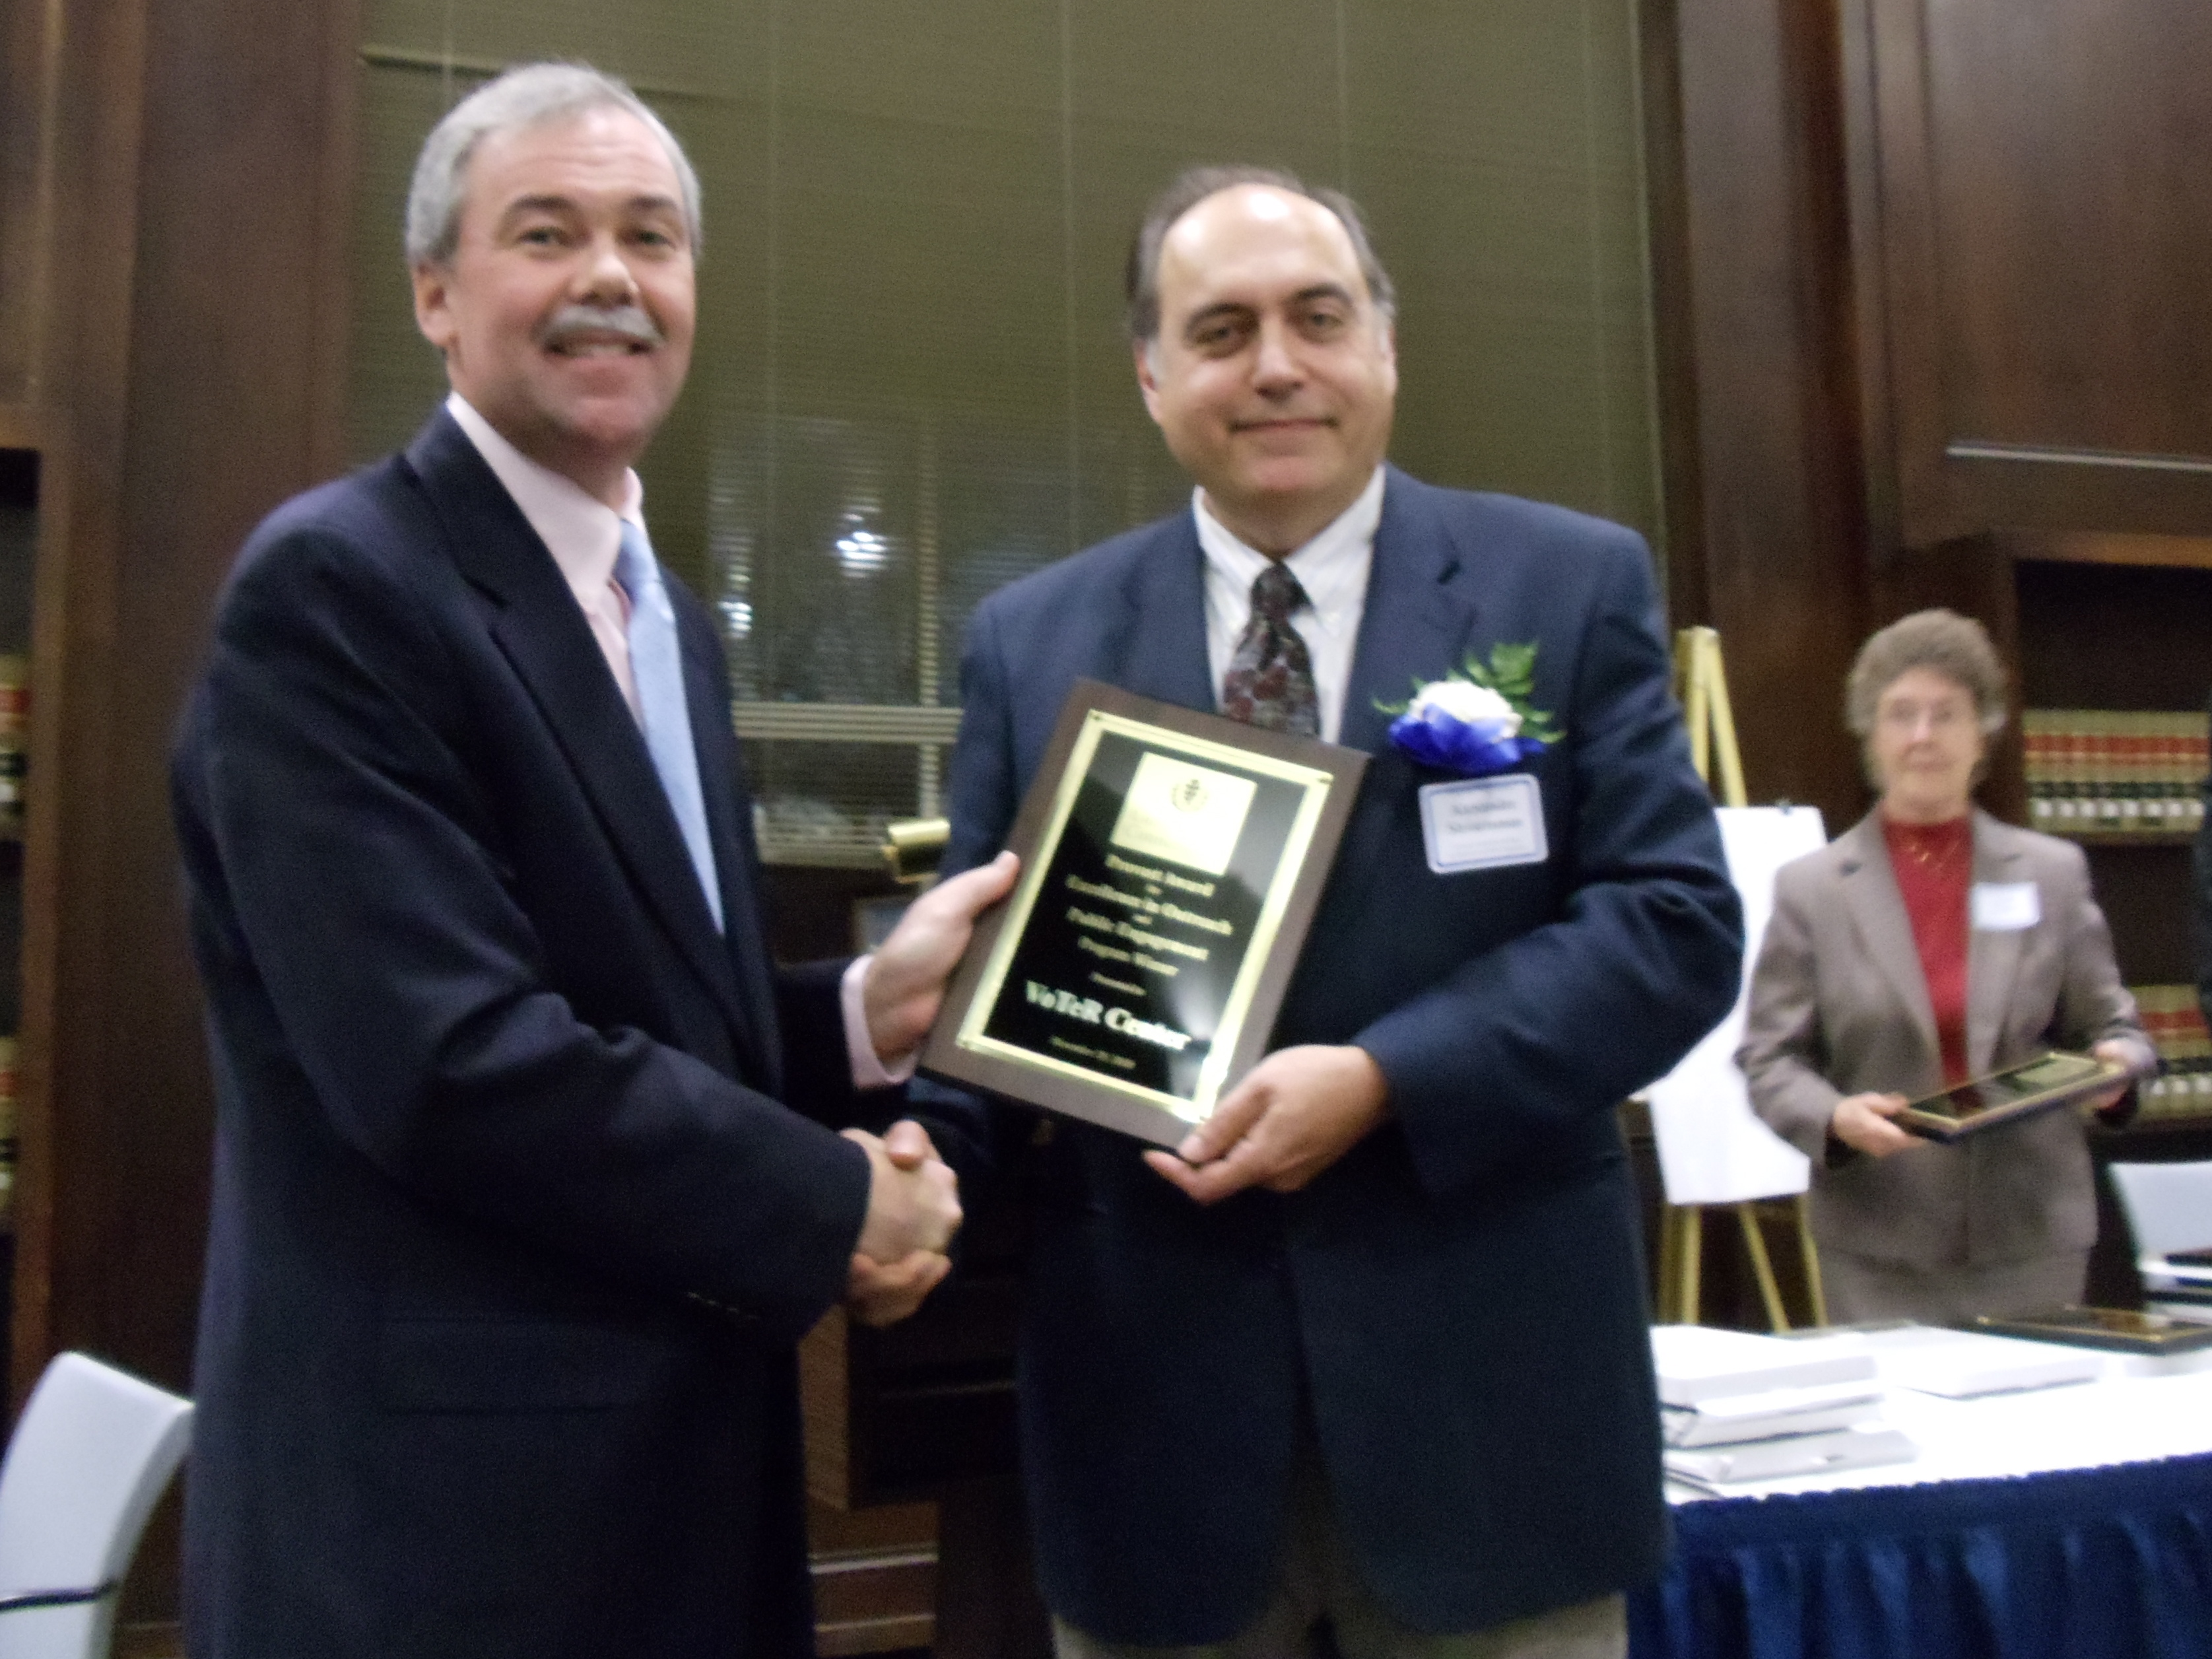 VoTeR Center Award 2010